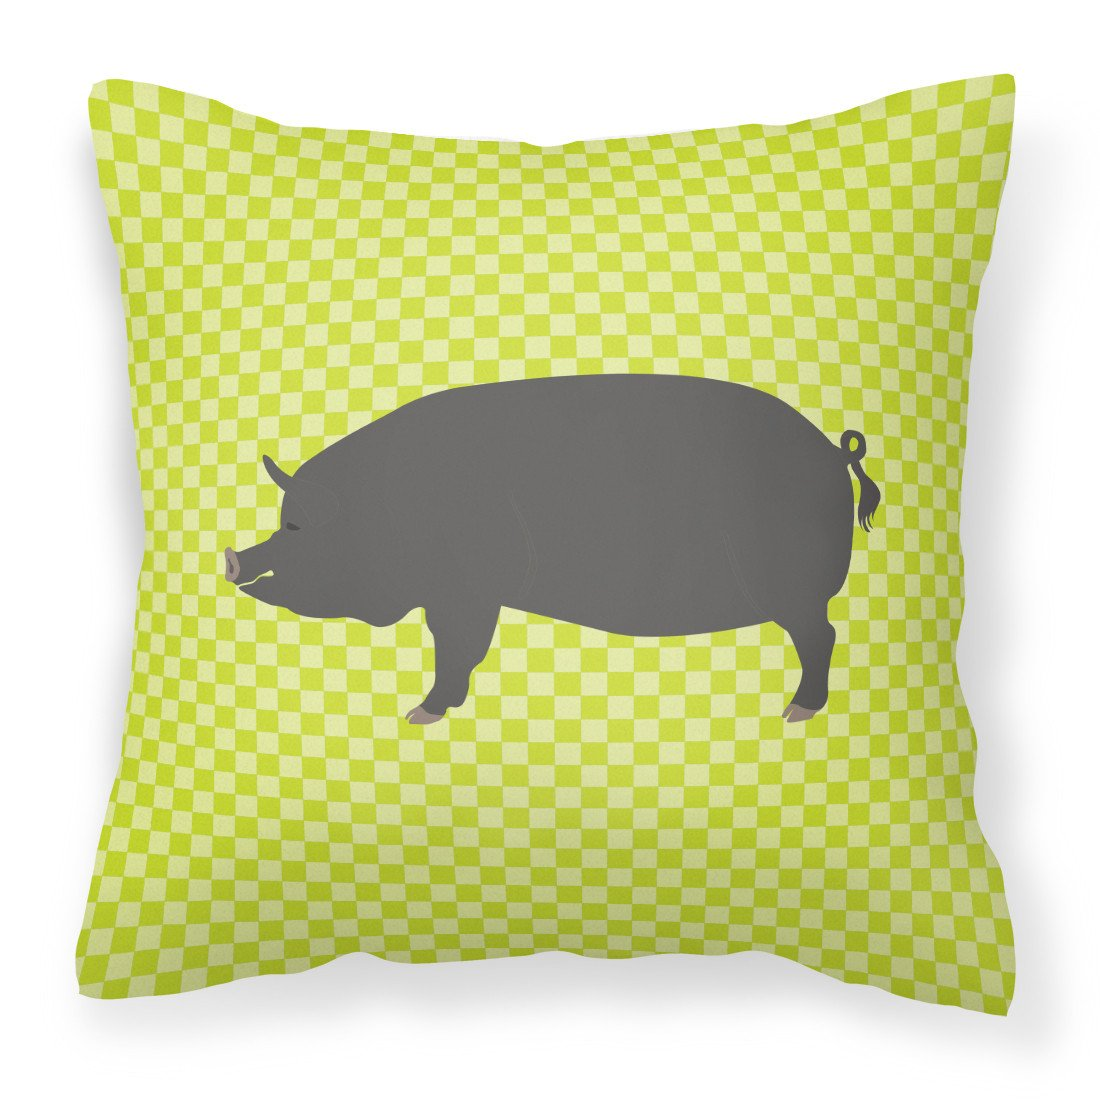 Berkshire Pig Green Fabric Decorative Pillow BB7759PW1818 by Caroline's Treasures